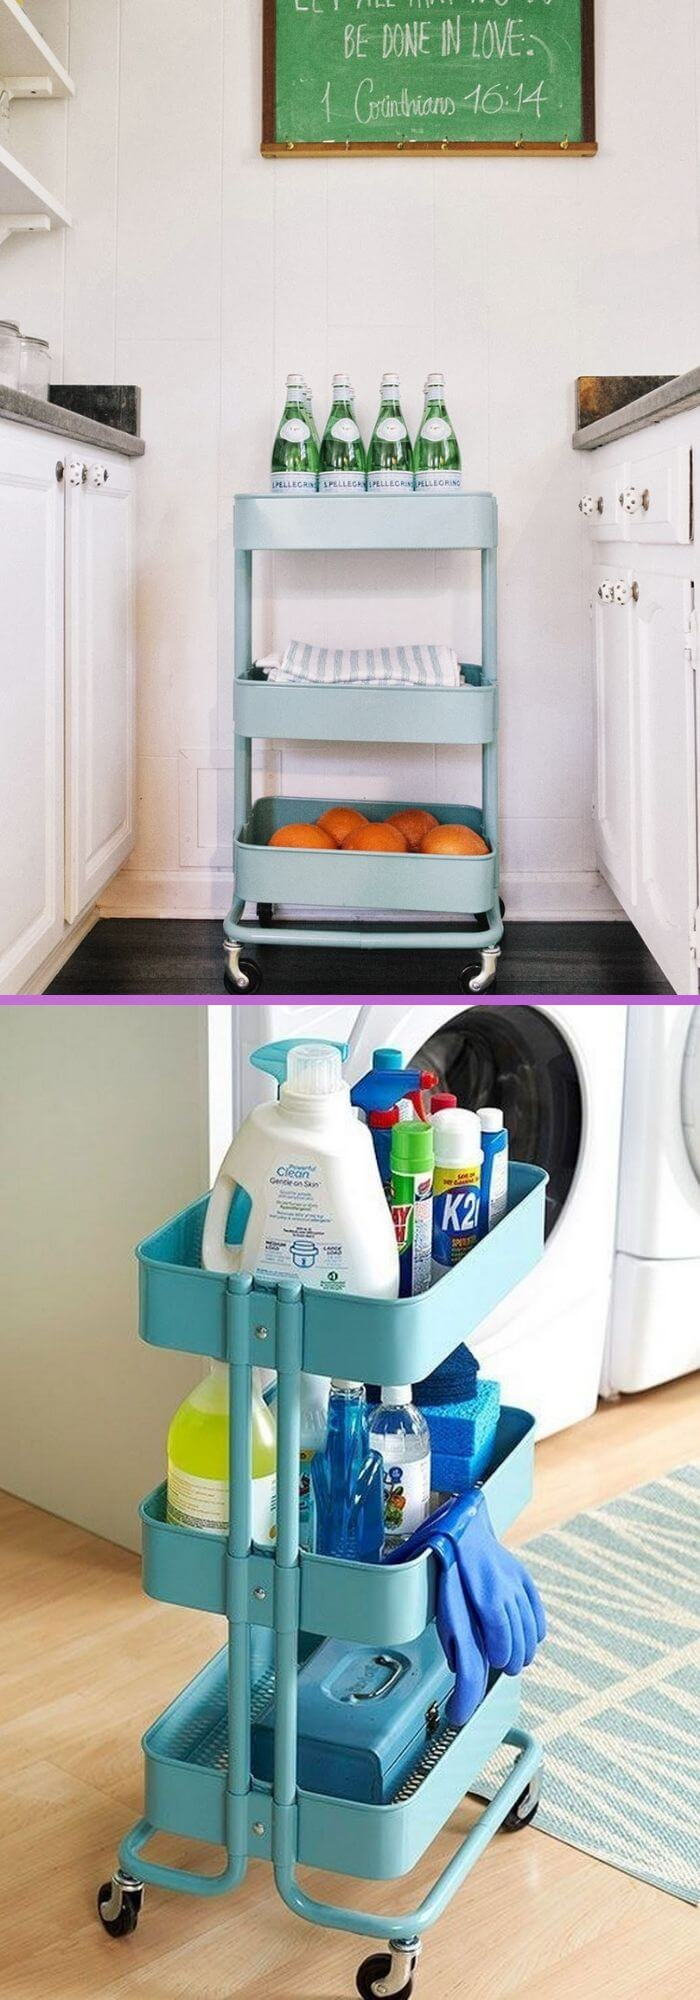 Shelf with wheels to store products in the kitchen A cart that moves where you can put hygienic products